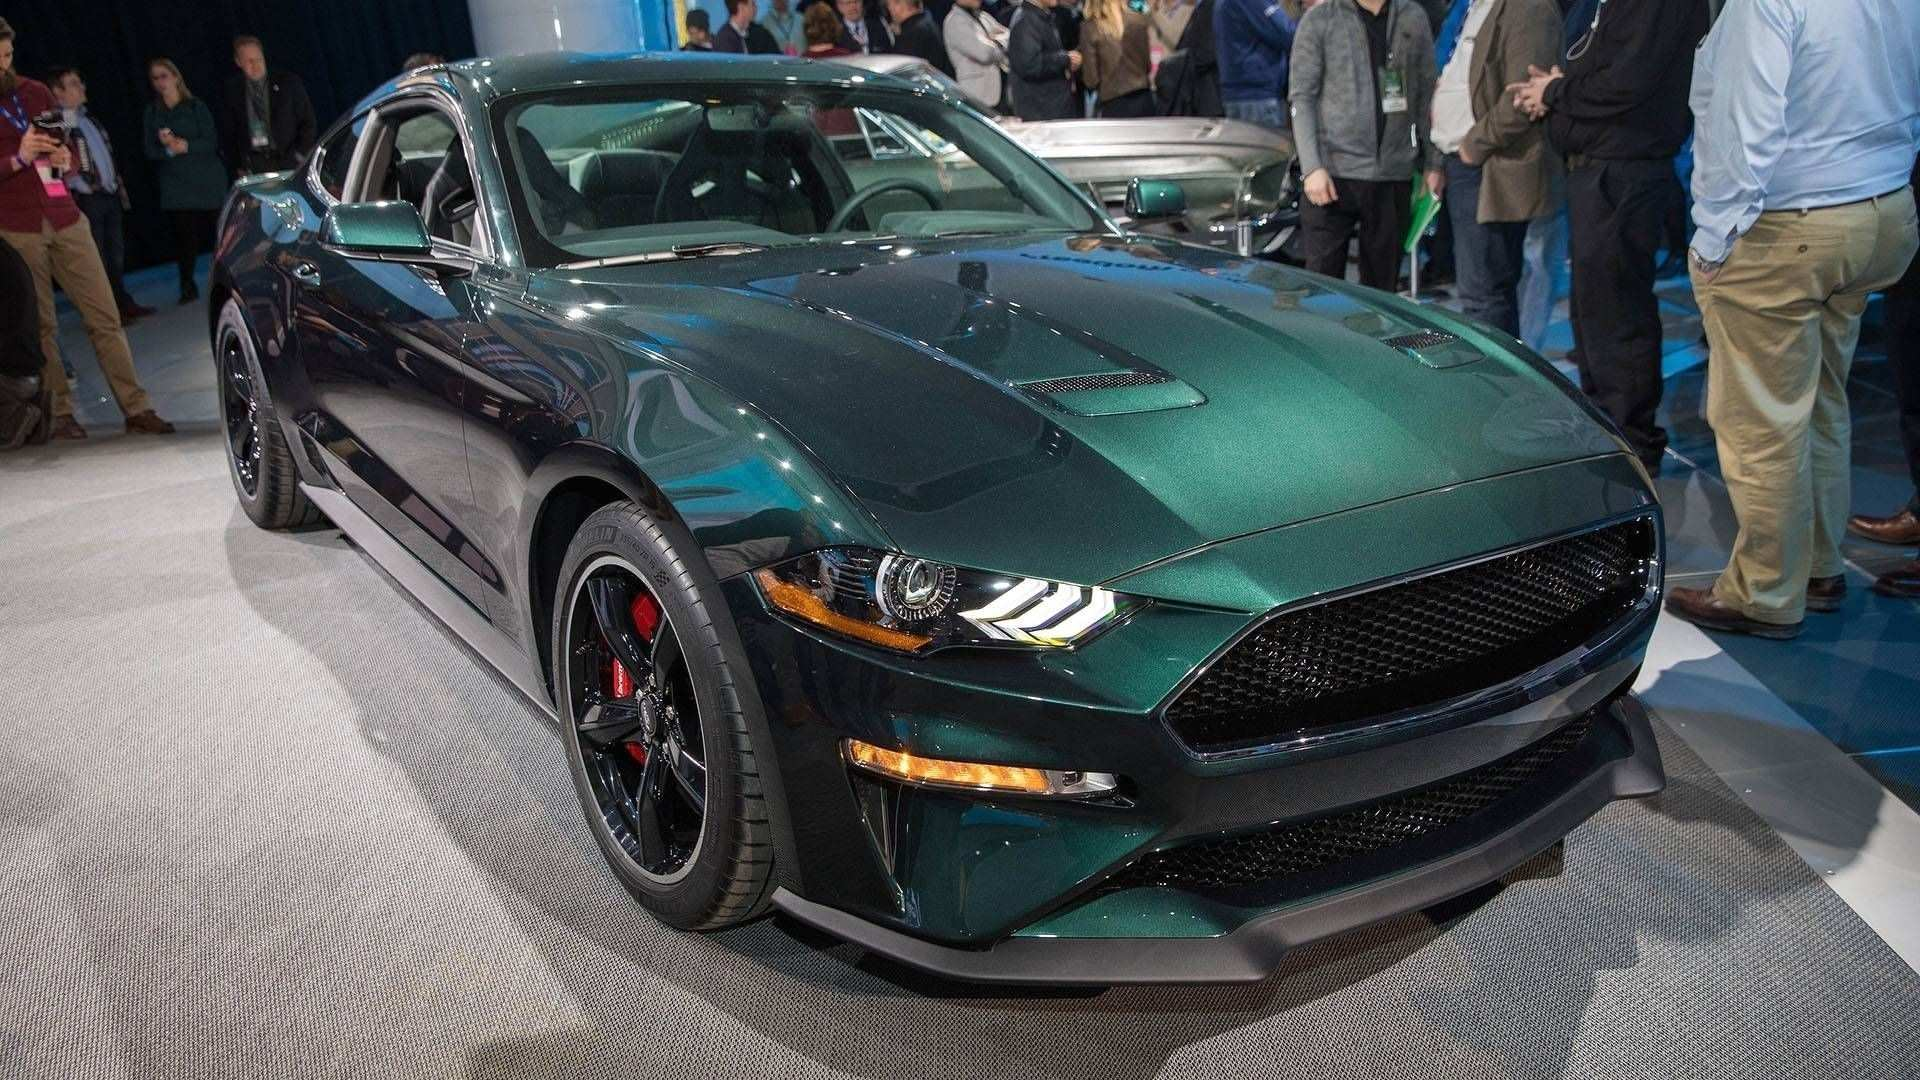 63 The Best 2019 Mustang Rocket Price Design And Review